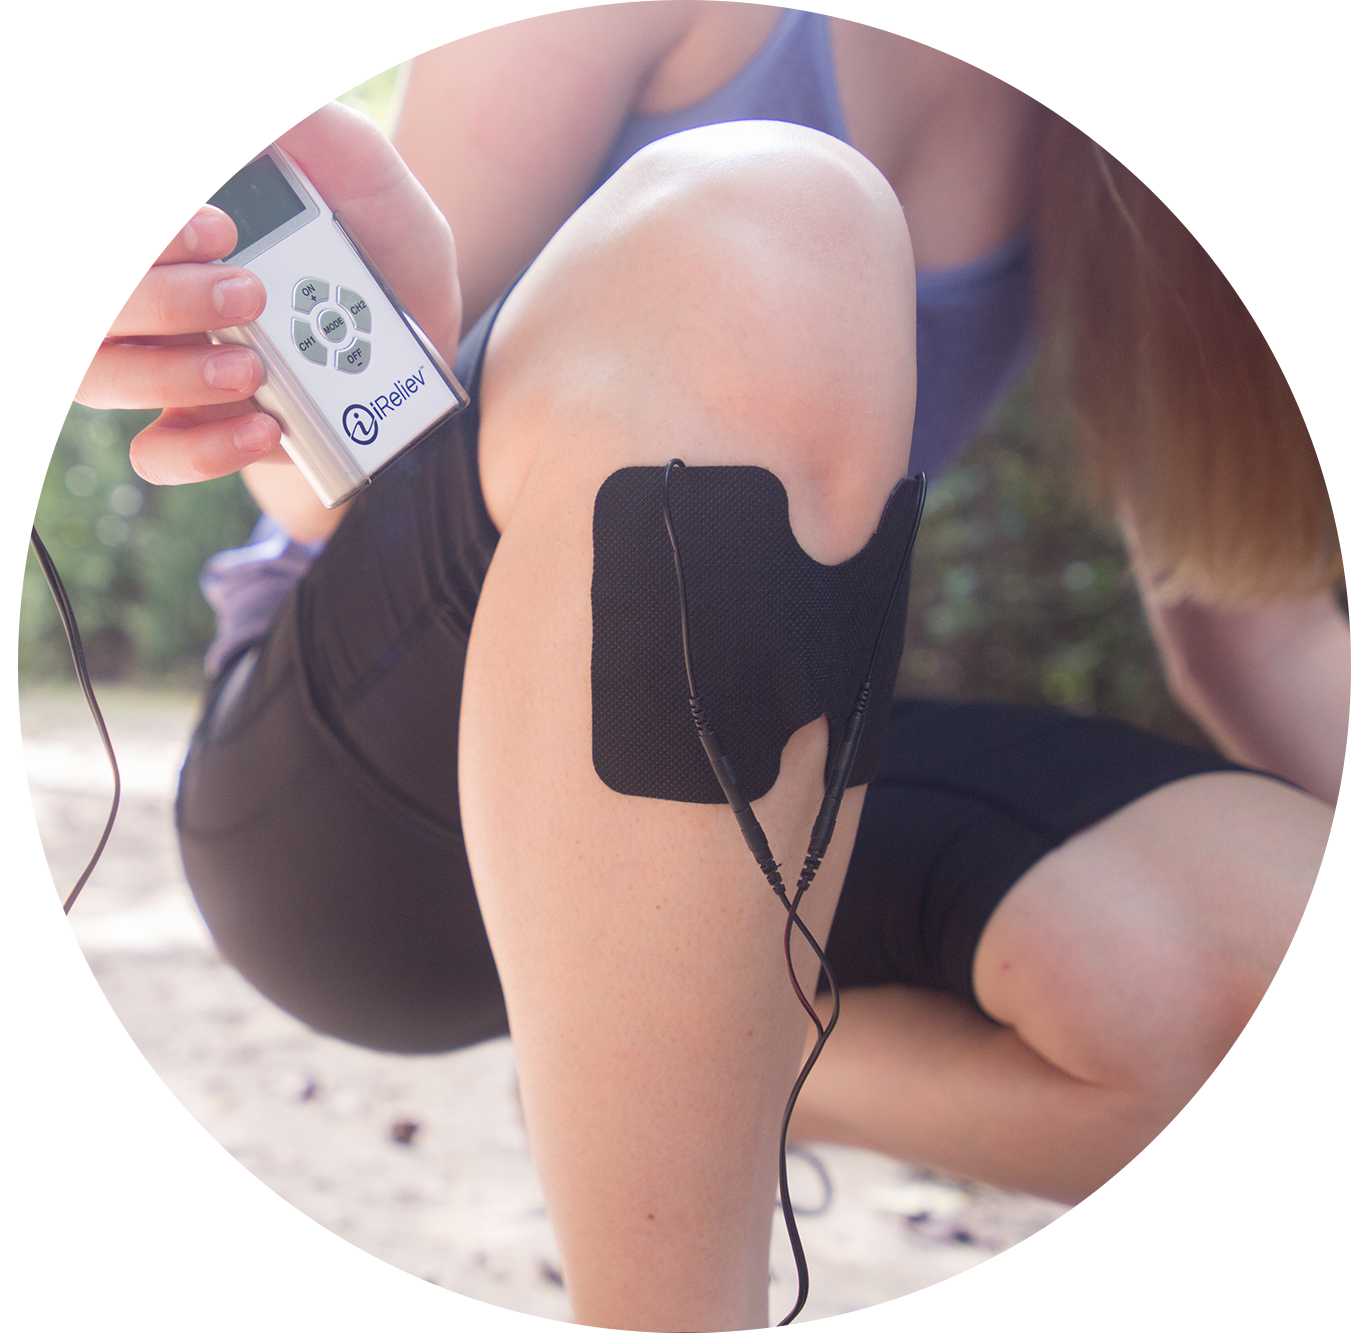 TENS pad placement for baseball injuries